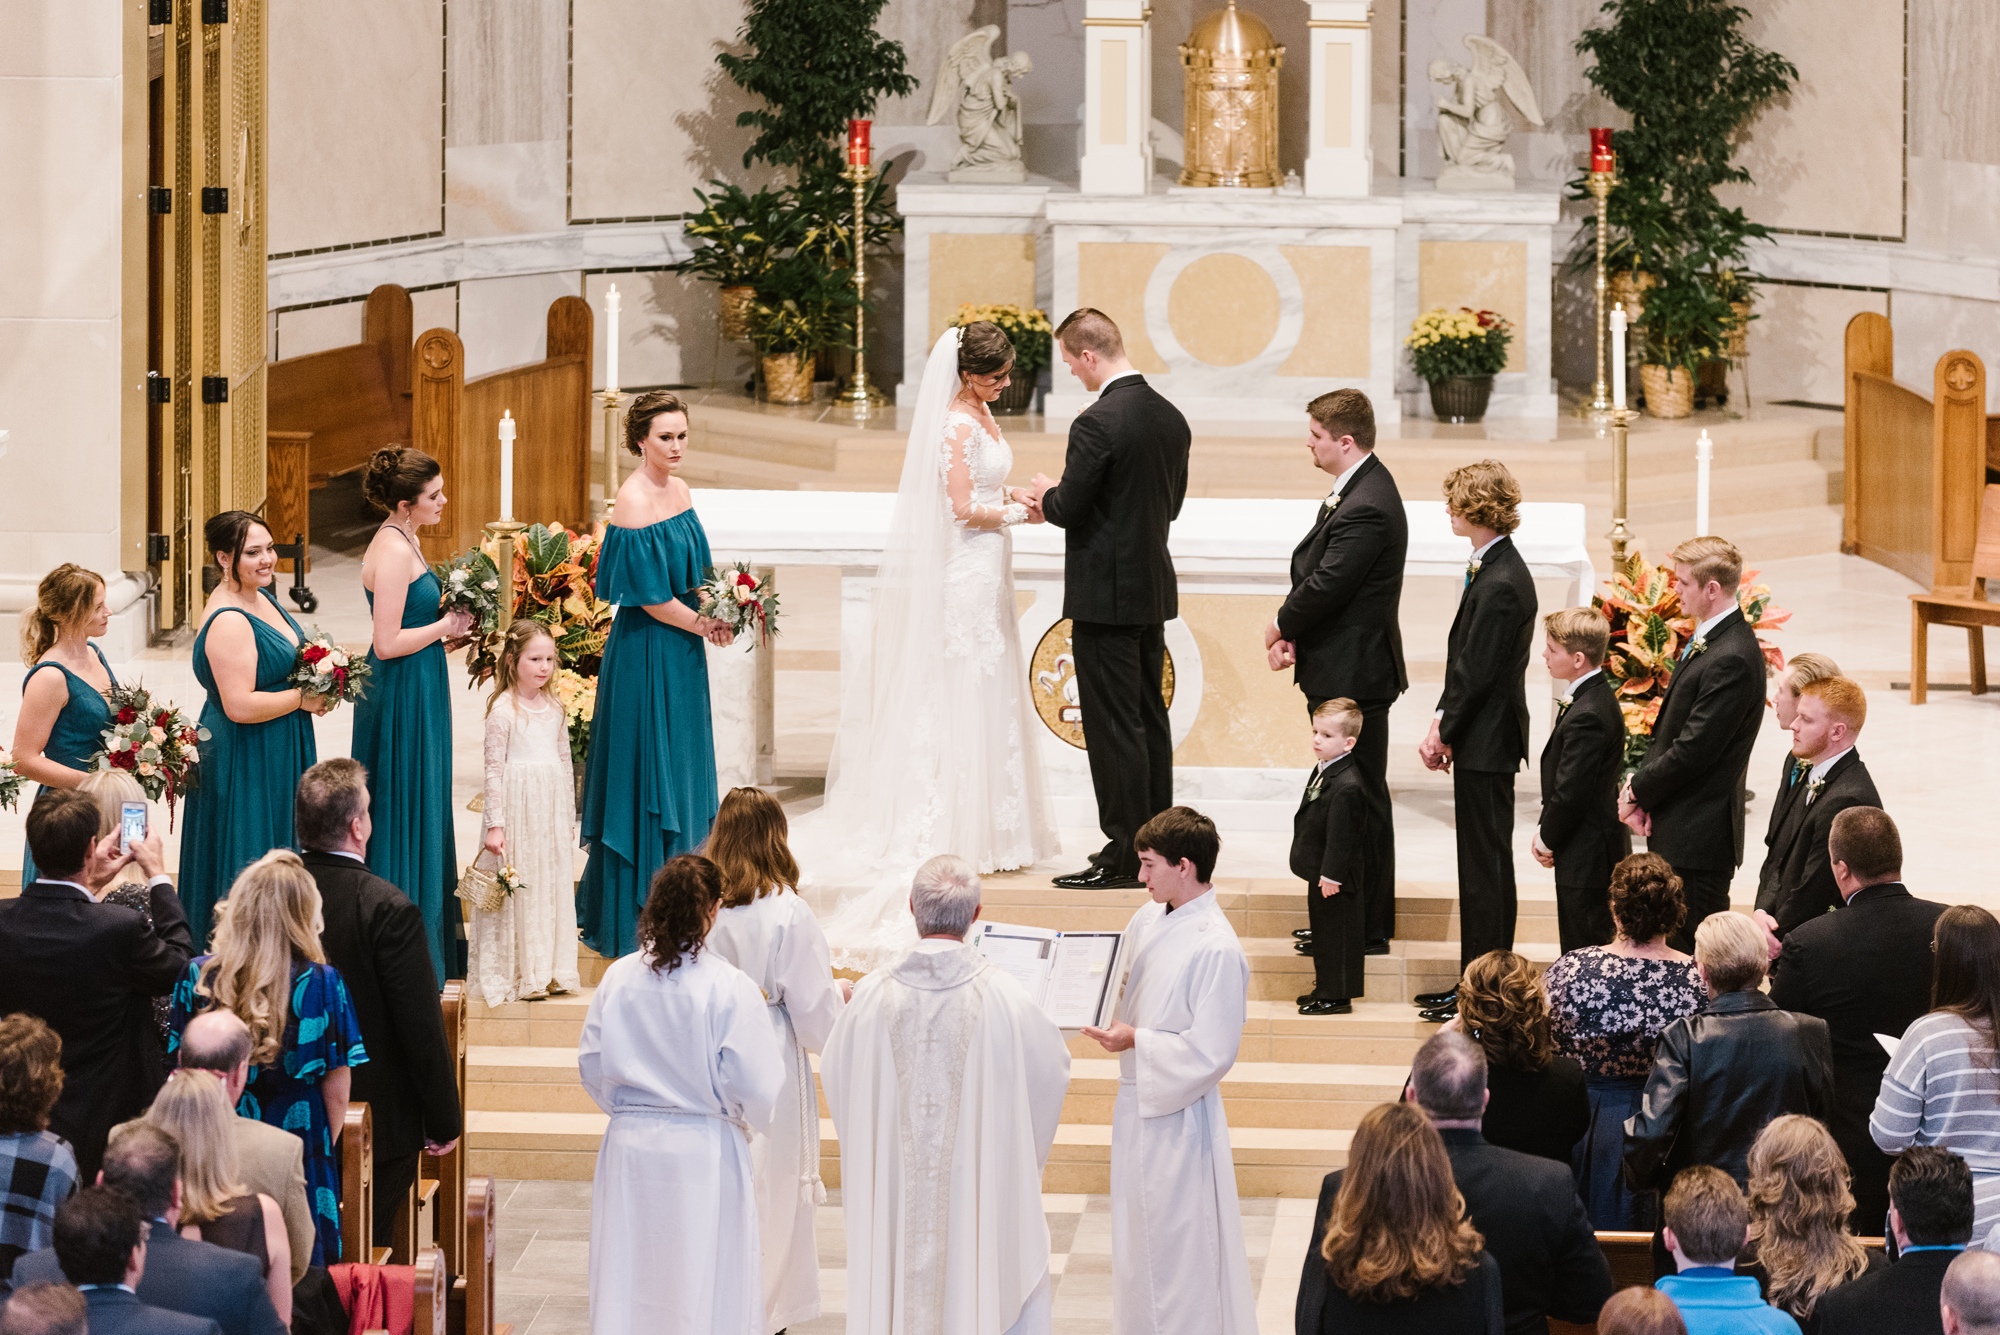 bride and groom exchanging rings at catholic church